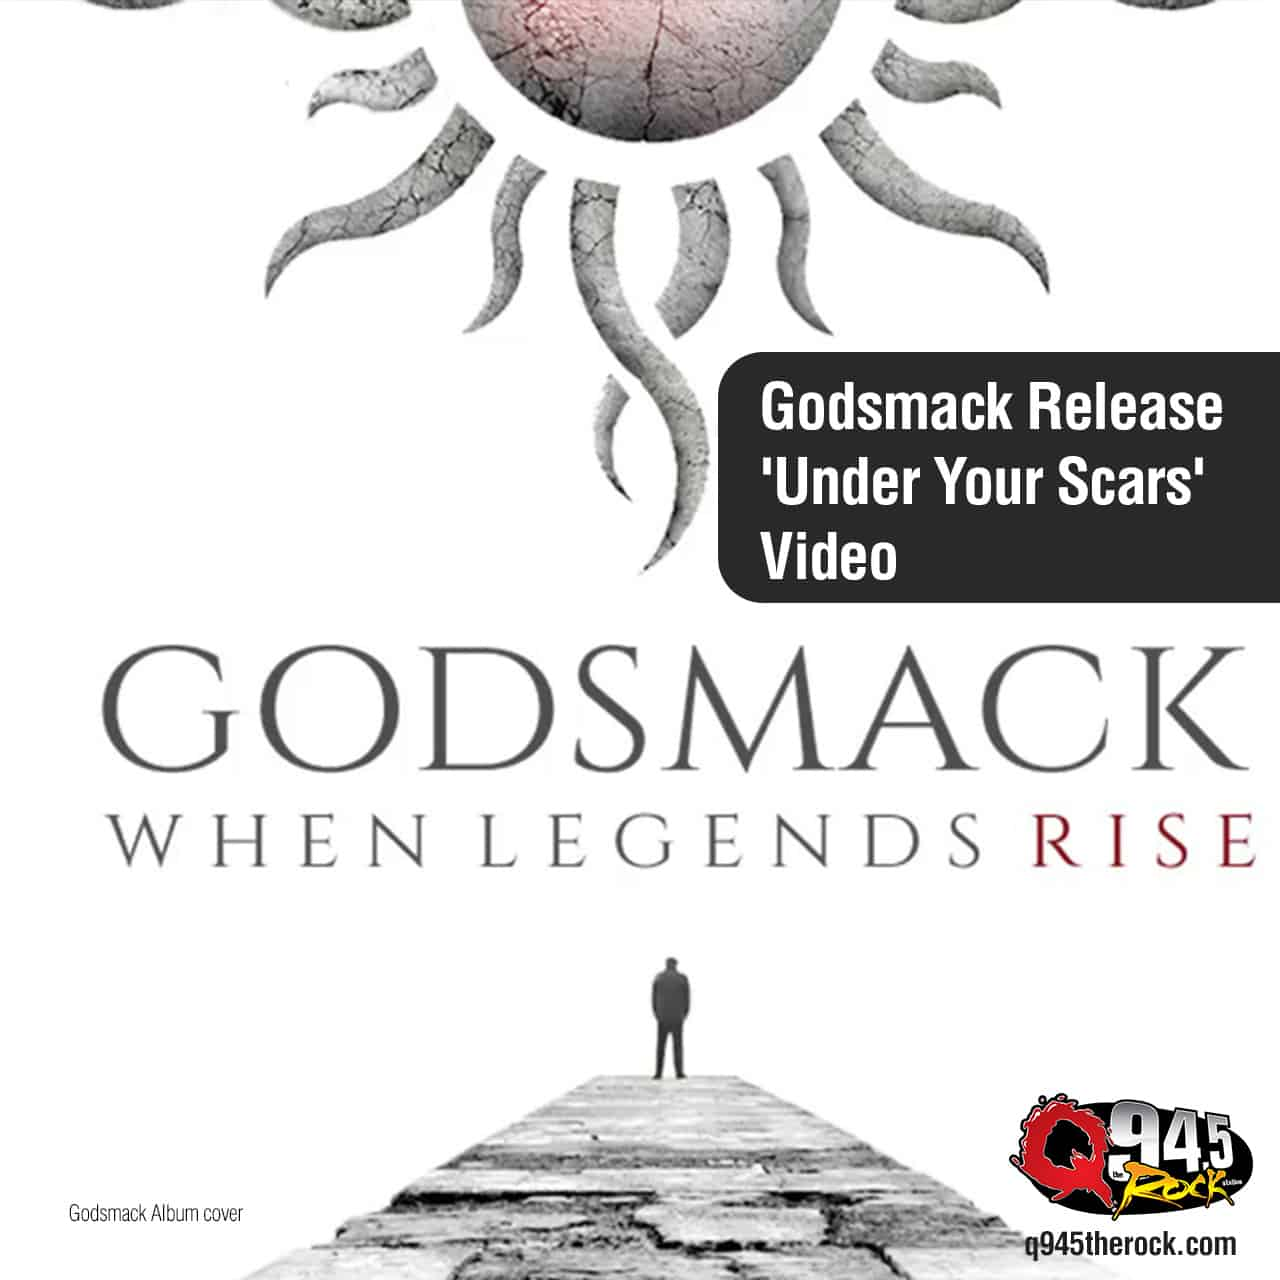 Godsmack Release 'Under Your Scars' Video